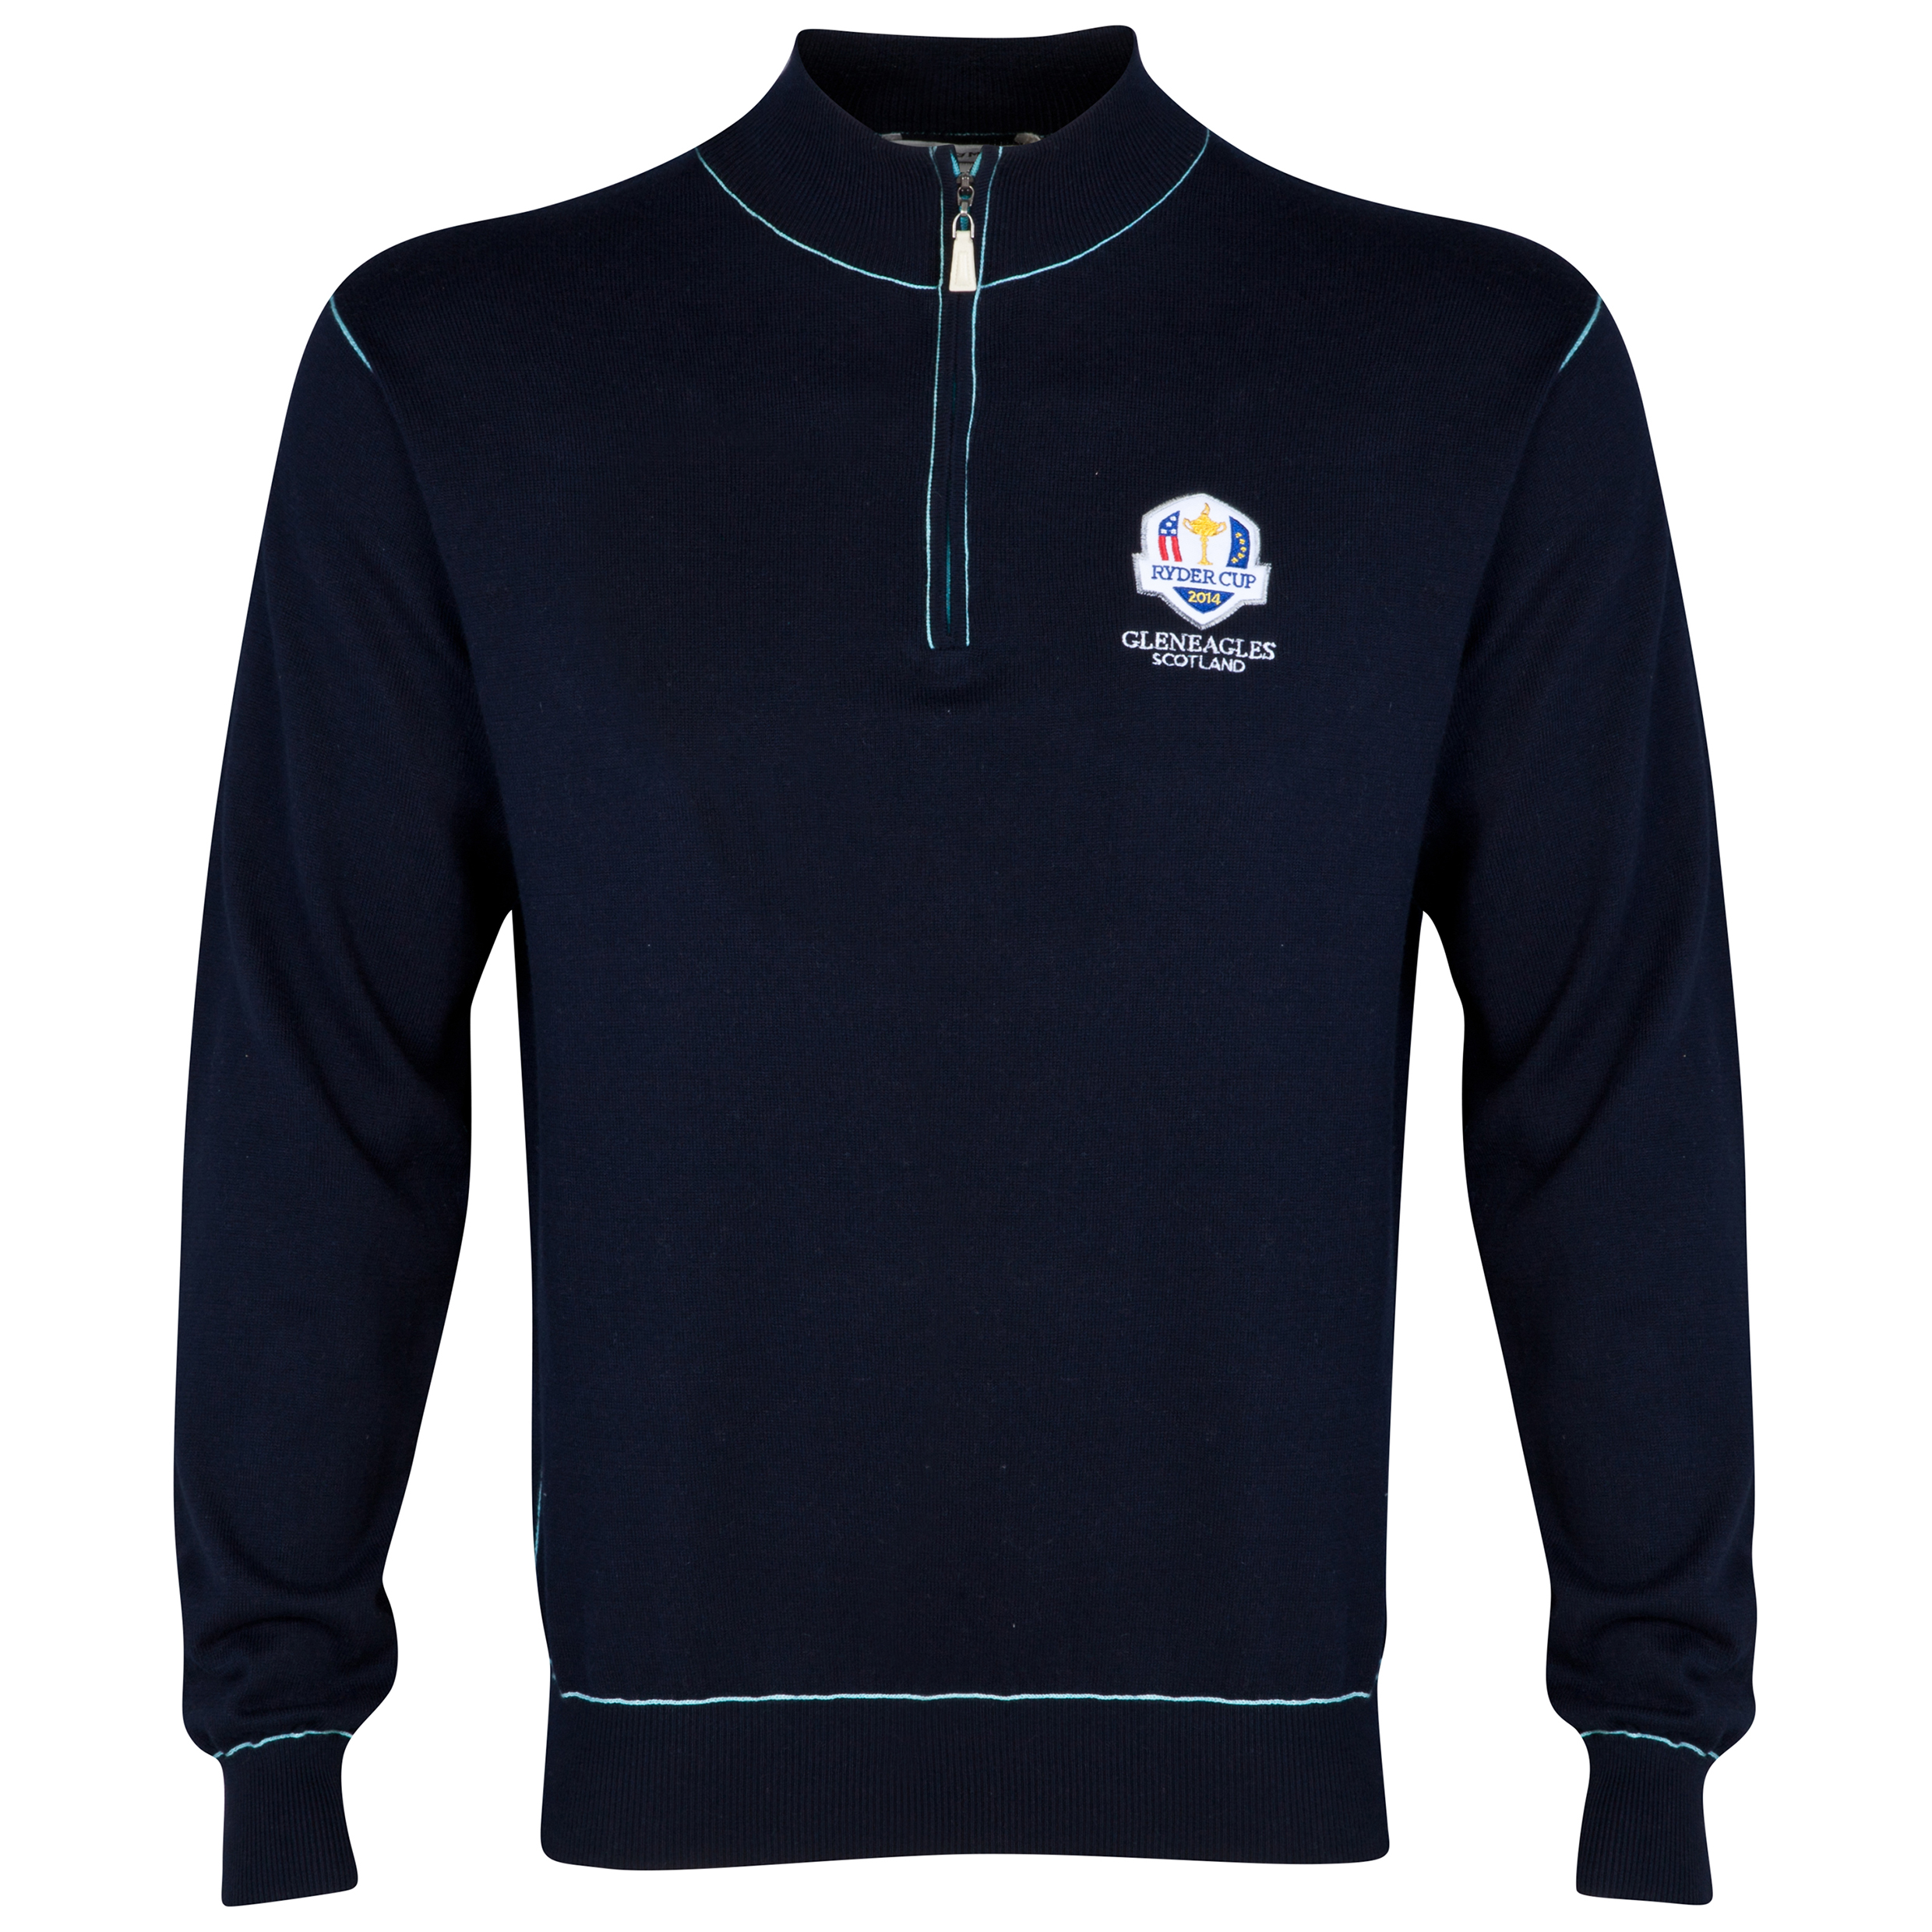 The 2014 Ryder Cup Peter Millar Cotton Cashmere Corded Contrast Zip Tooth 1/4 Zip Sweater